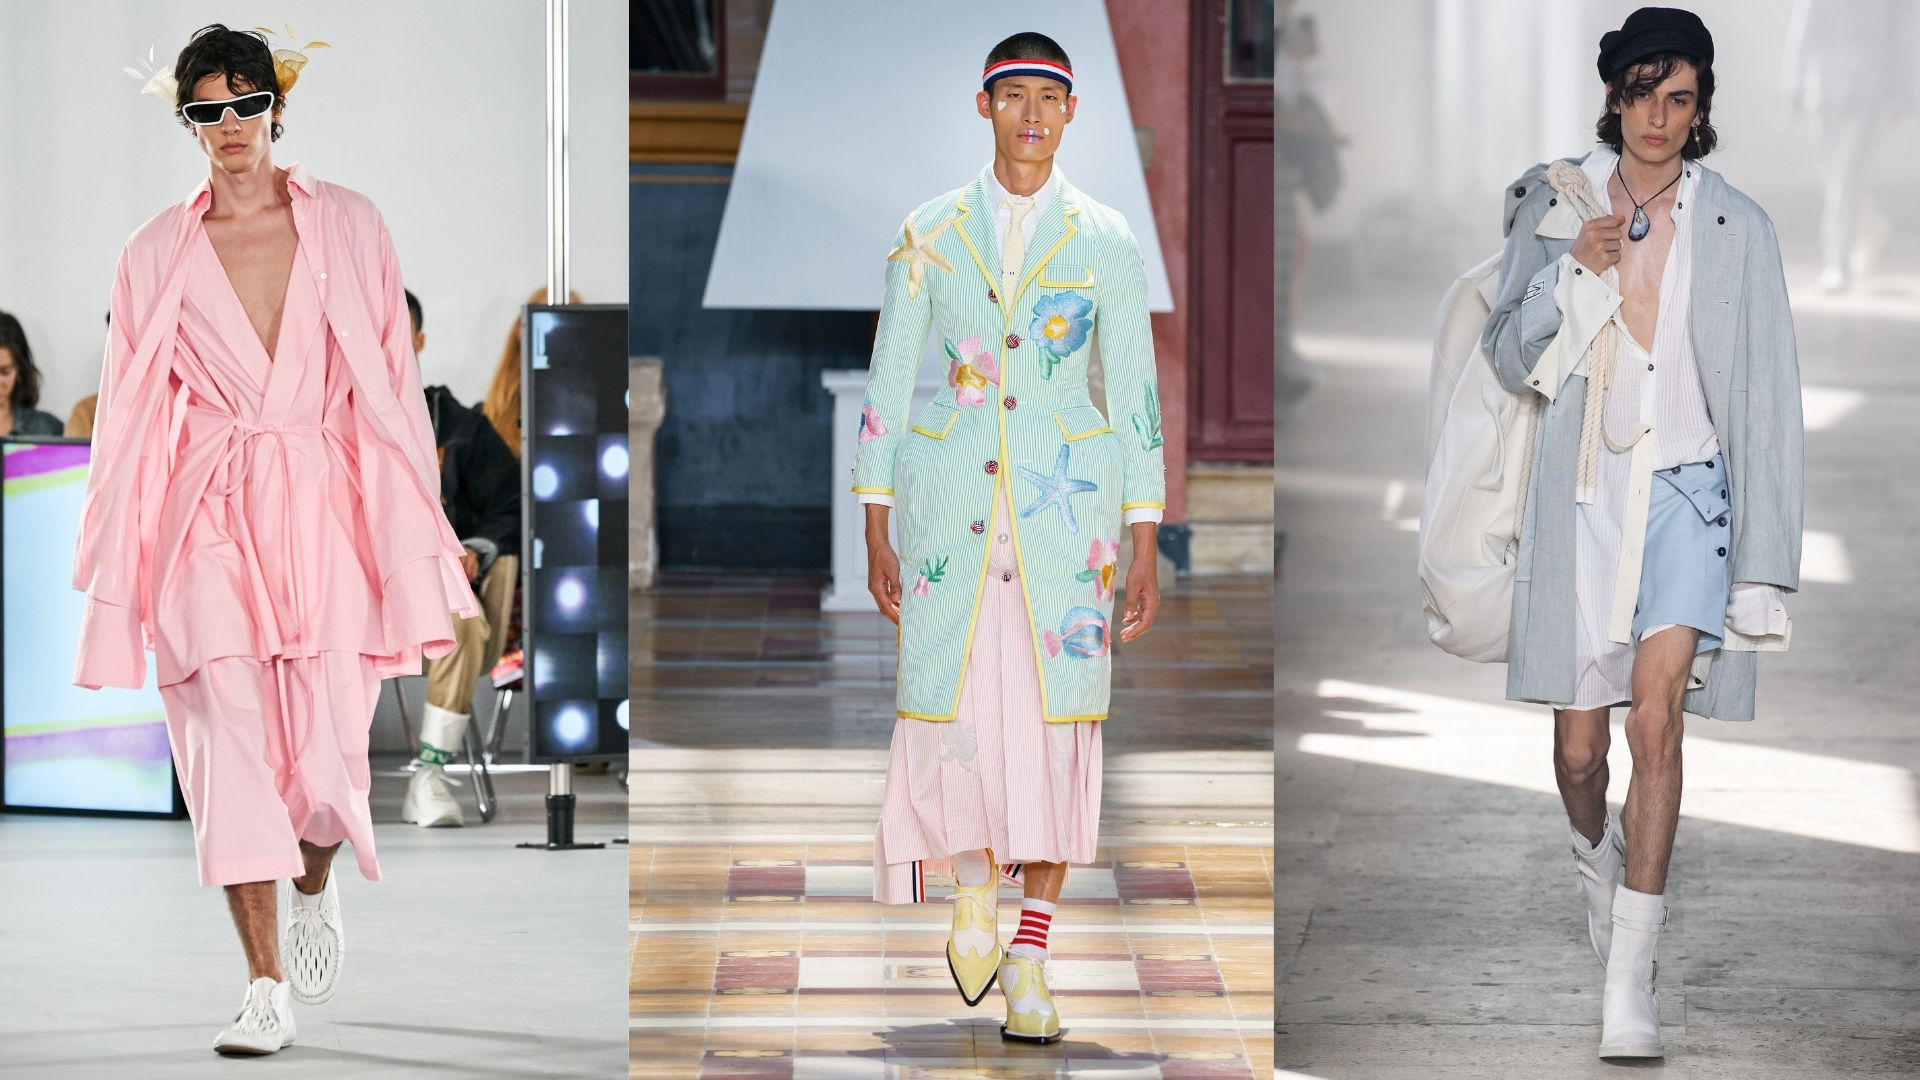 is men's fashion finally getting interesting? – the young